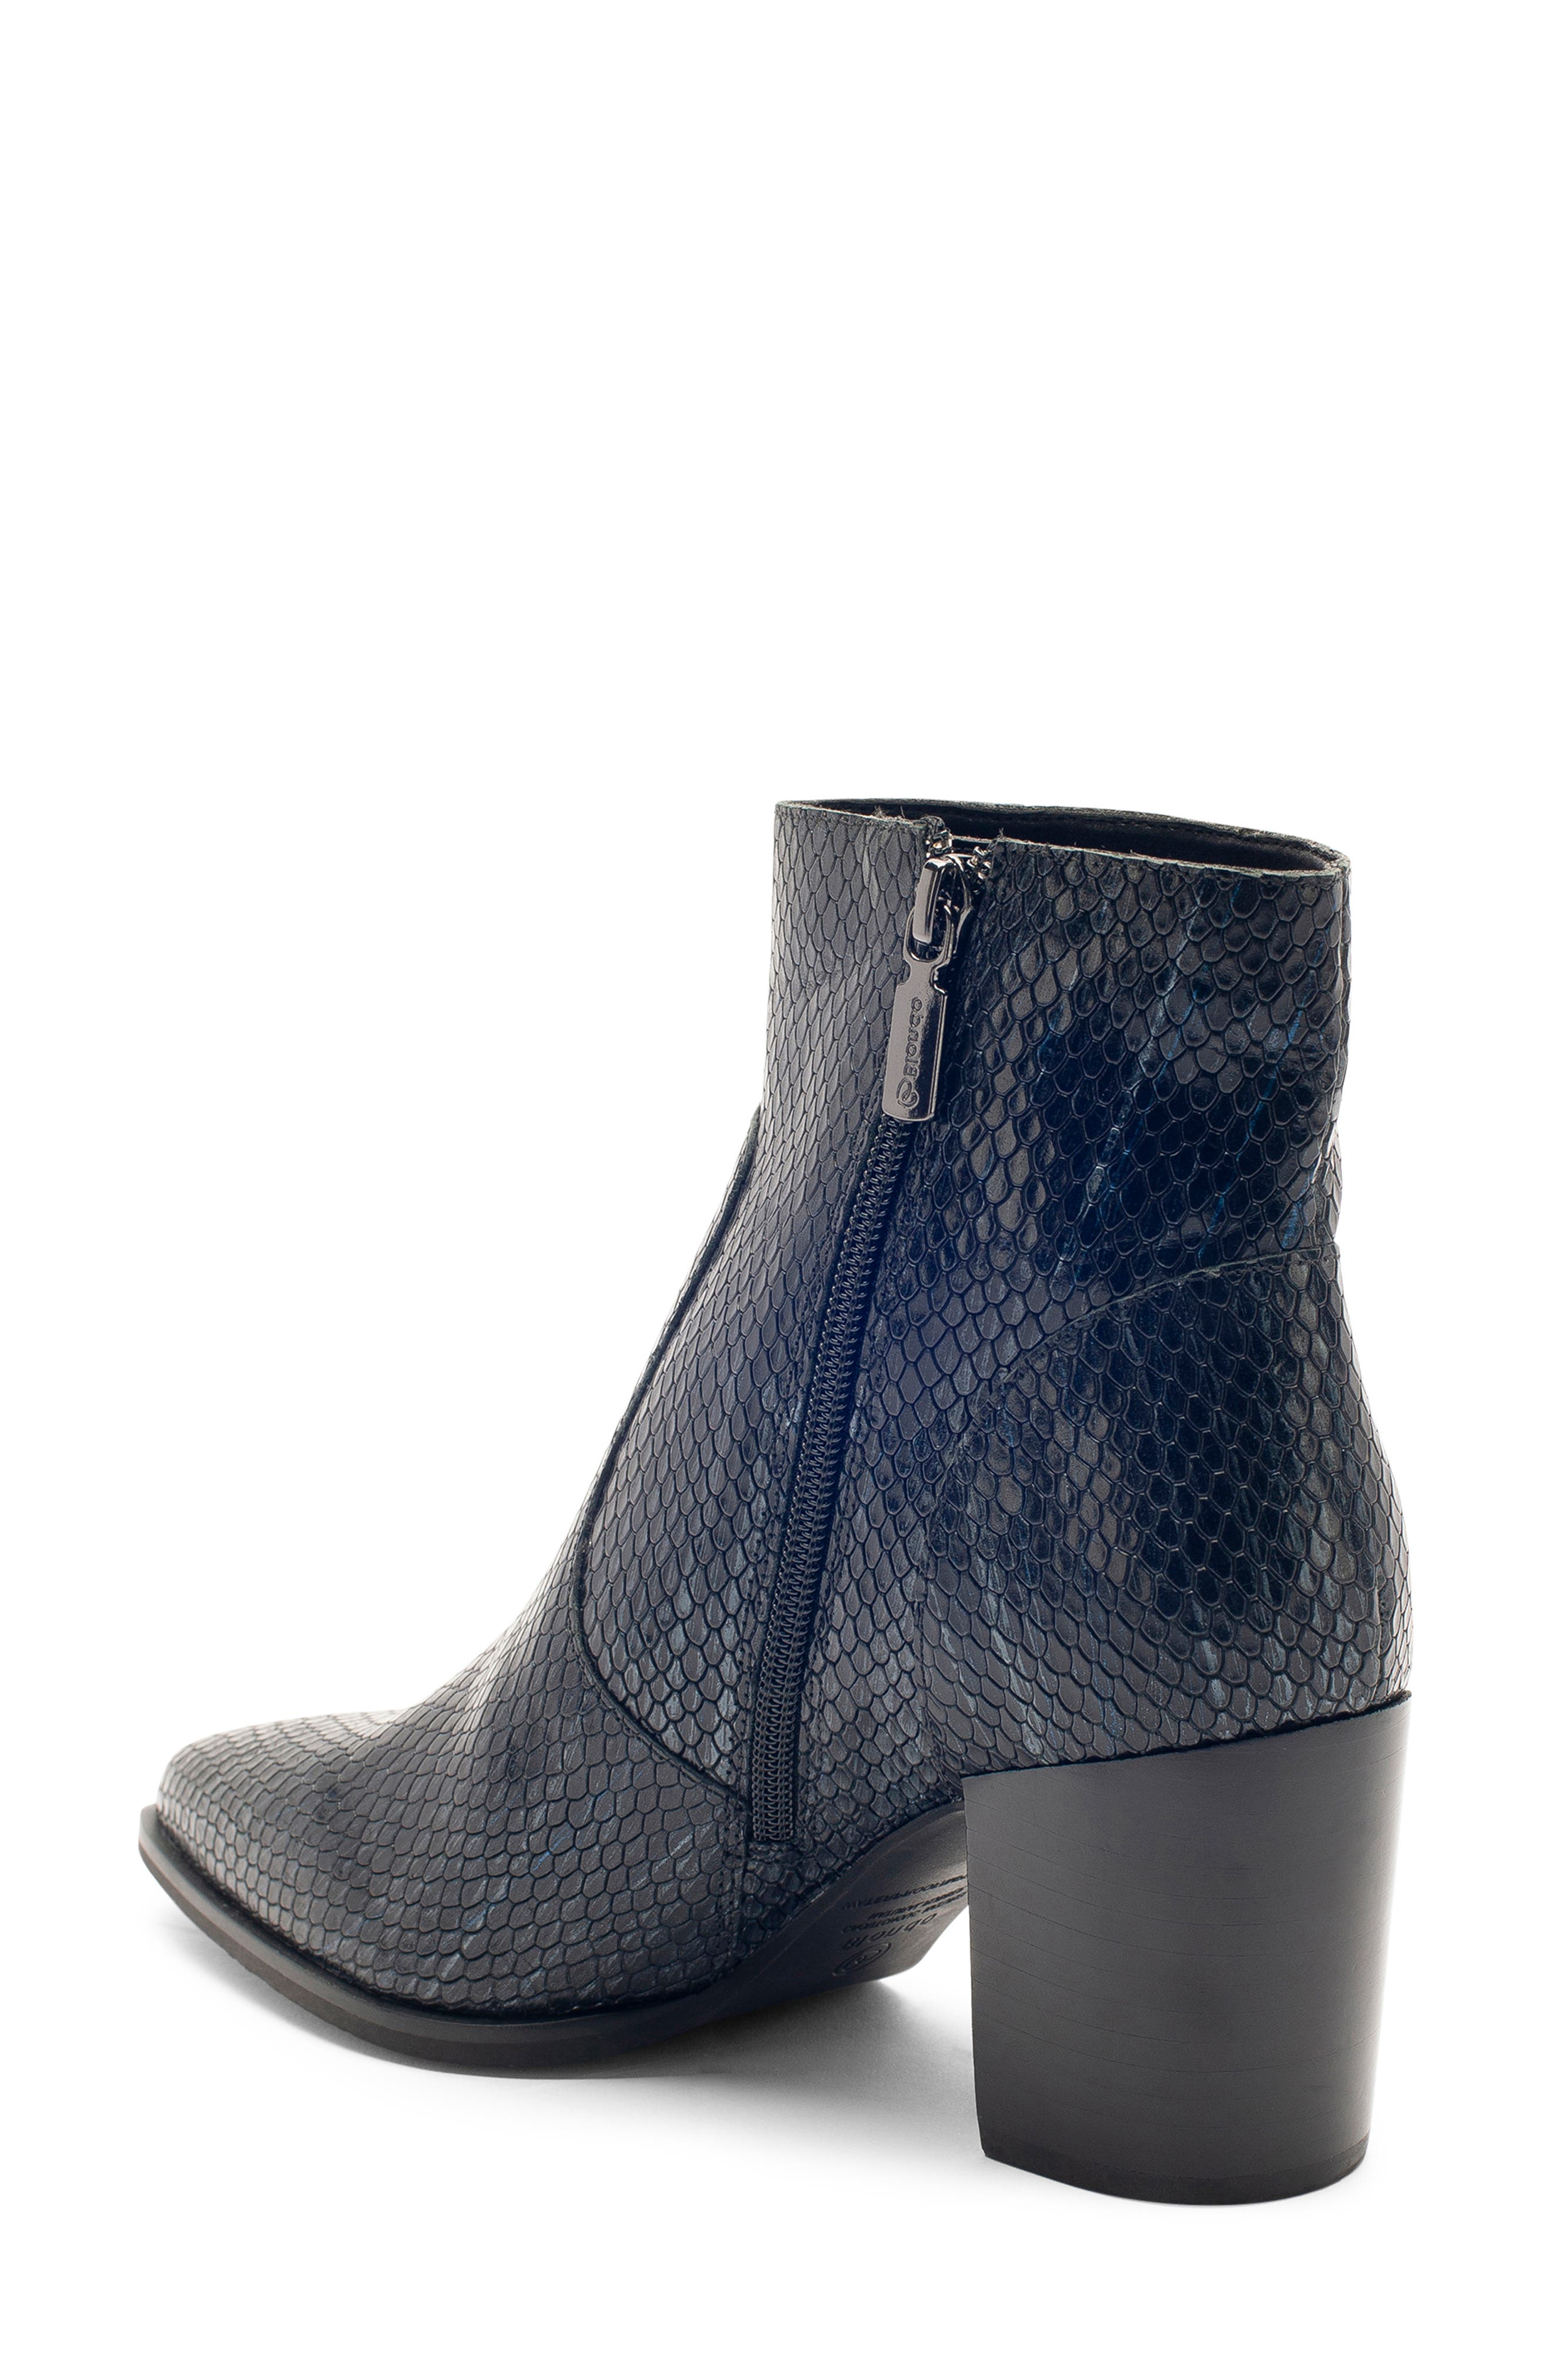 Tania Waterproof Bootie,                             Alternate thumbnail 2, color,                             BLACK SNAKE LEATHER